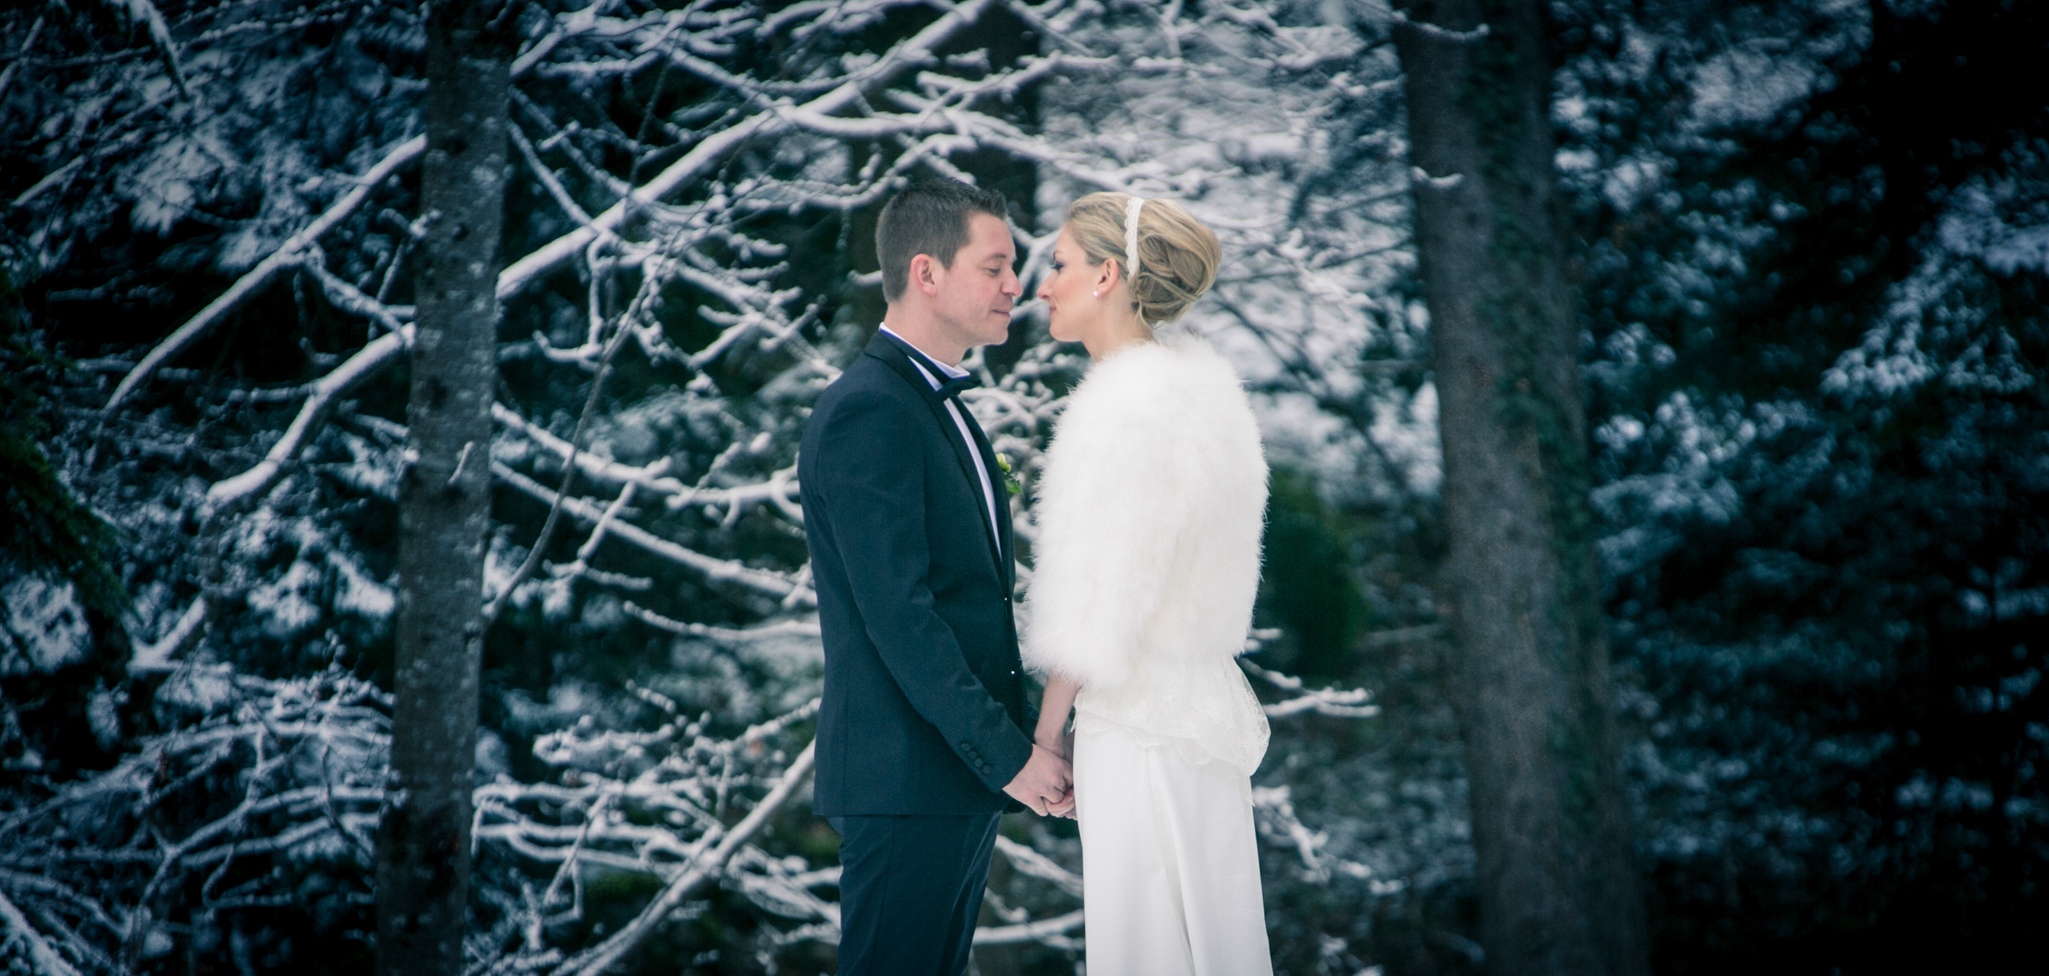 photographe-mariage-ardeche-rhone-alpes-geneve-suisse-photo-neige-annecy-hiver-20